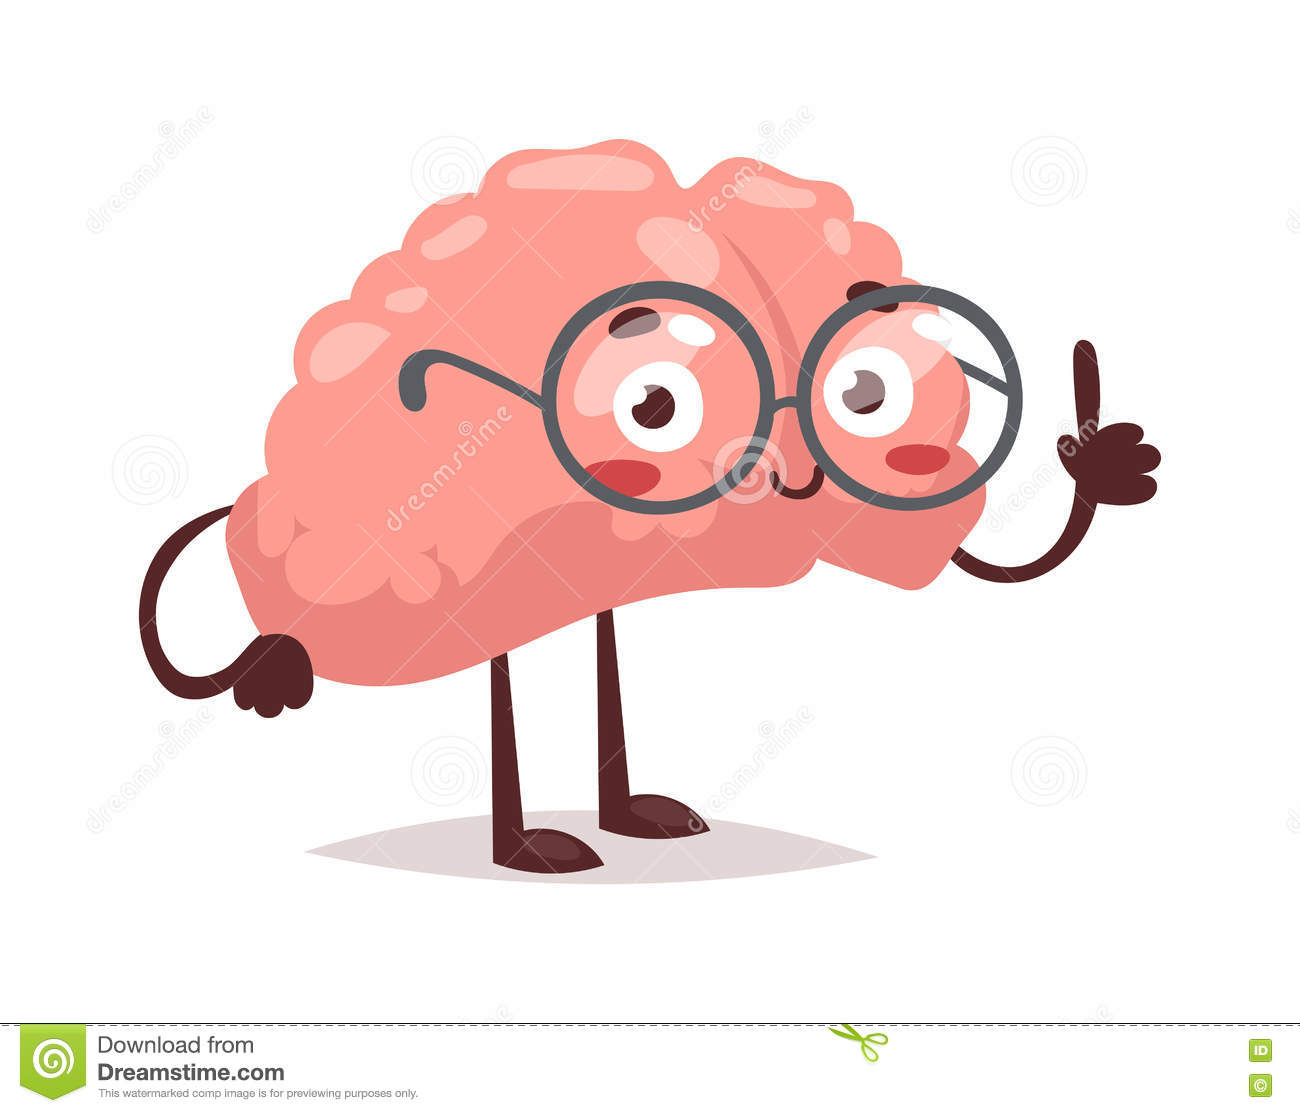 Https Www Dreamstime Com Stock Illustration Smart Brain Character Vector Illustration Cartoon Mind Cute Human Organ Creativity Concept Graphic Genius Medical Imagination Image73793324